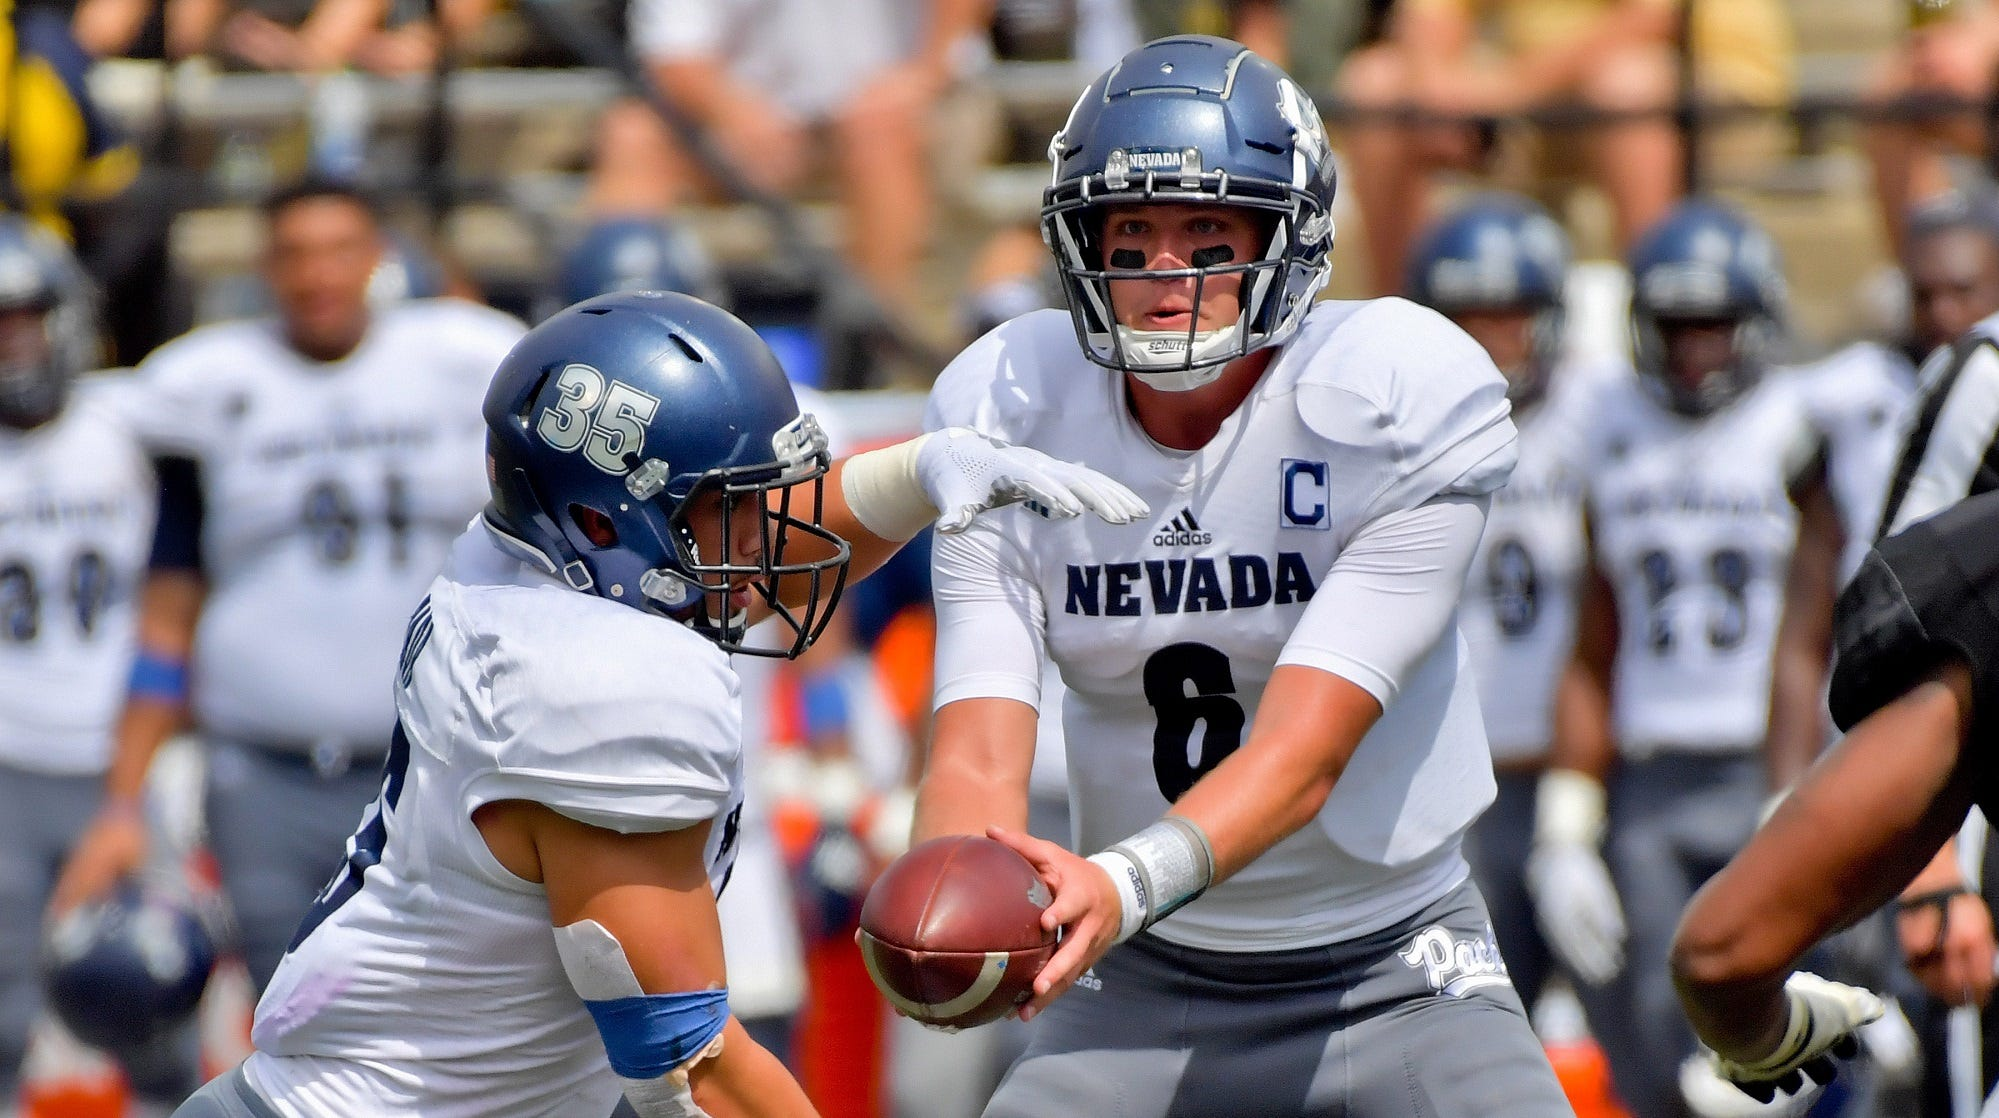 Nevada quarterback Ty Gangi (6) hands off to running back Toa Taua (35) during the second half at Vanderbilt Stadium.